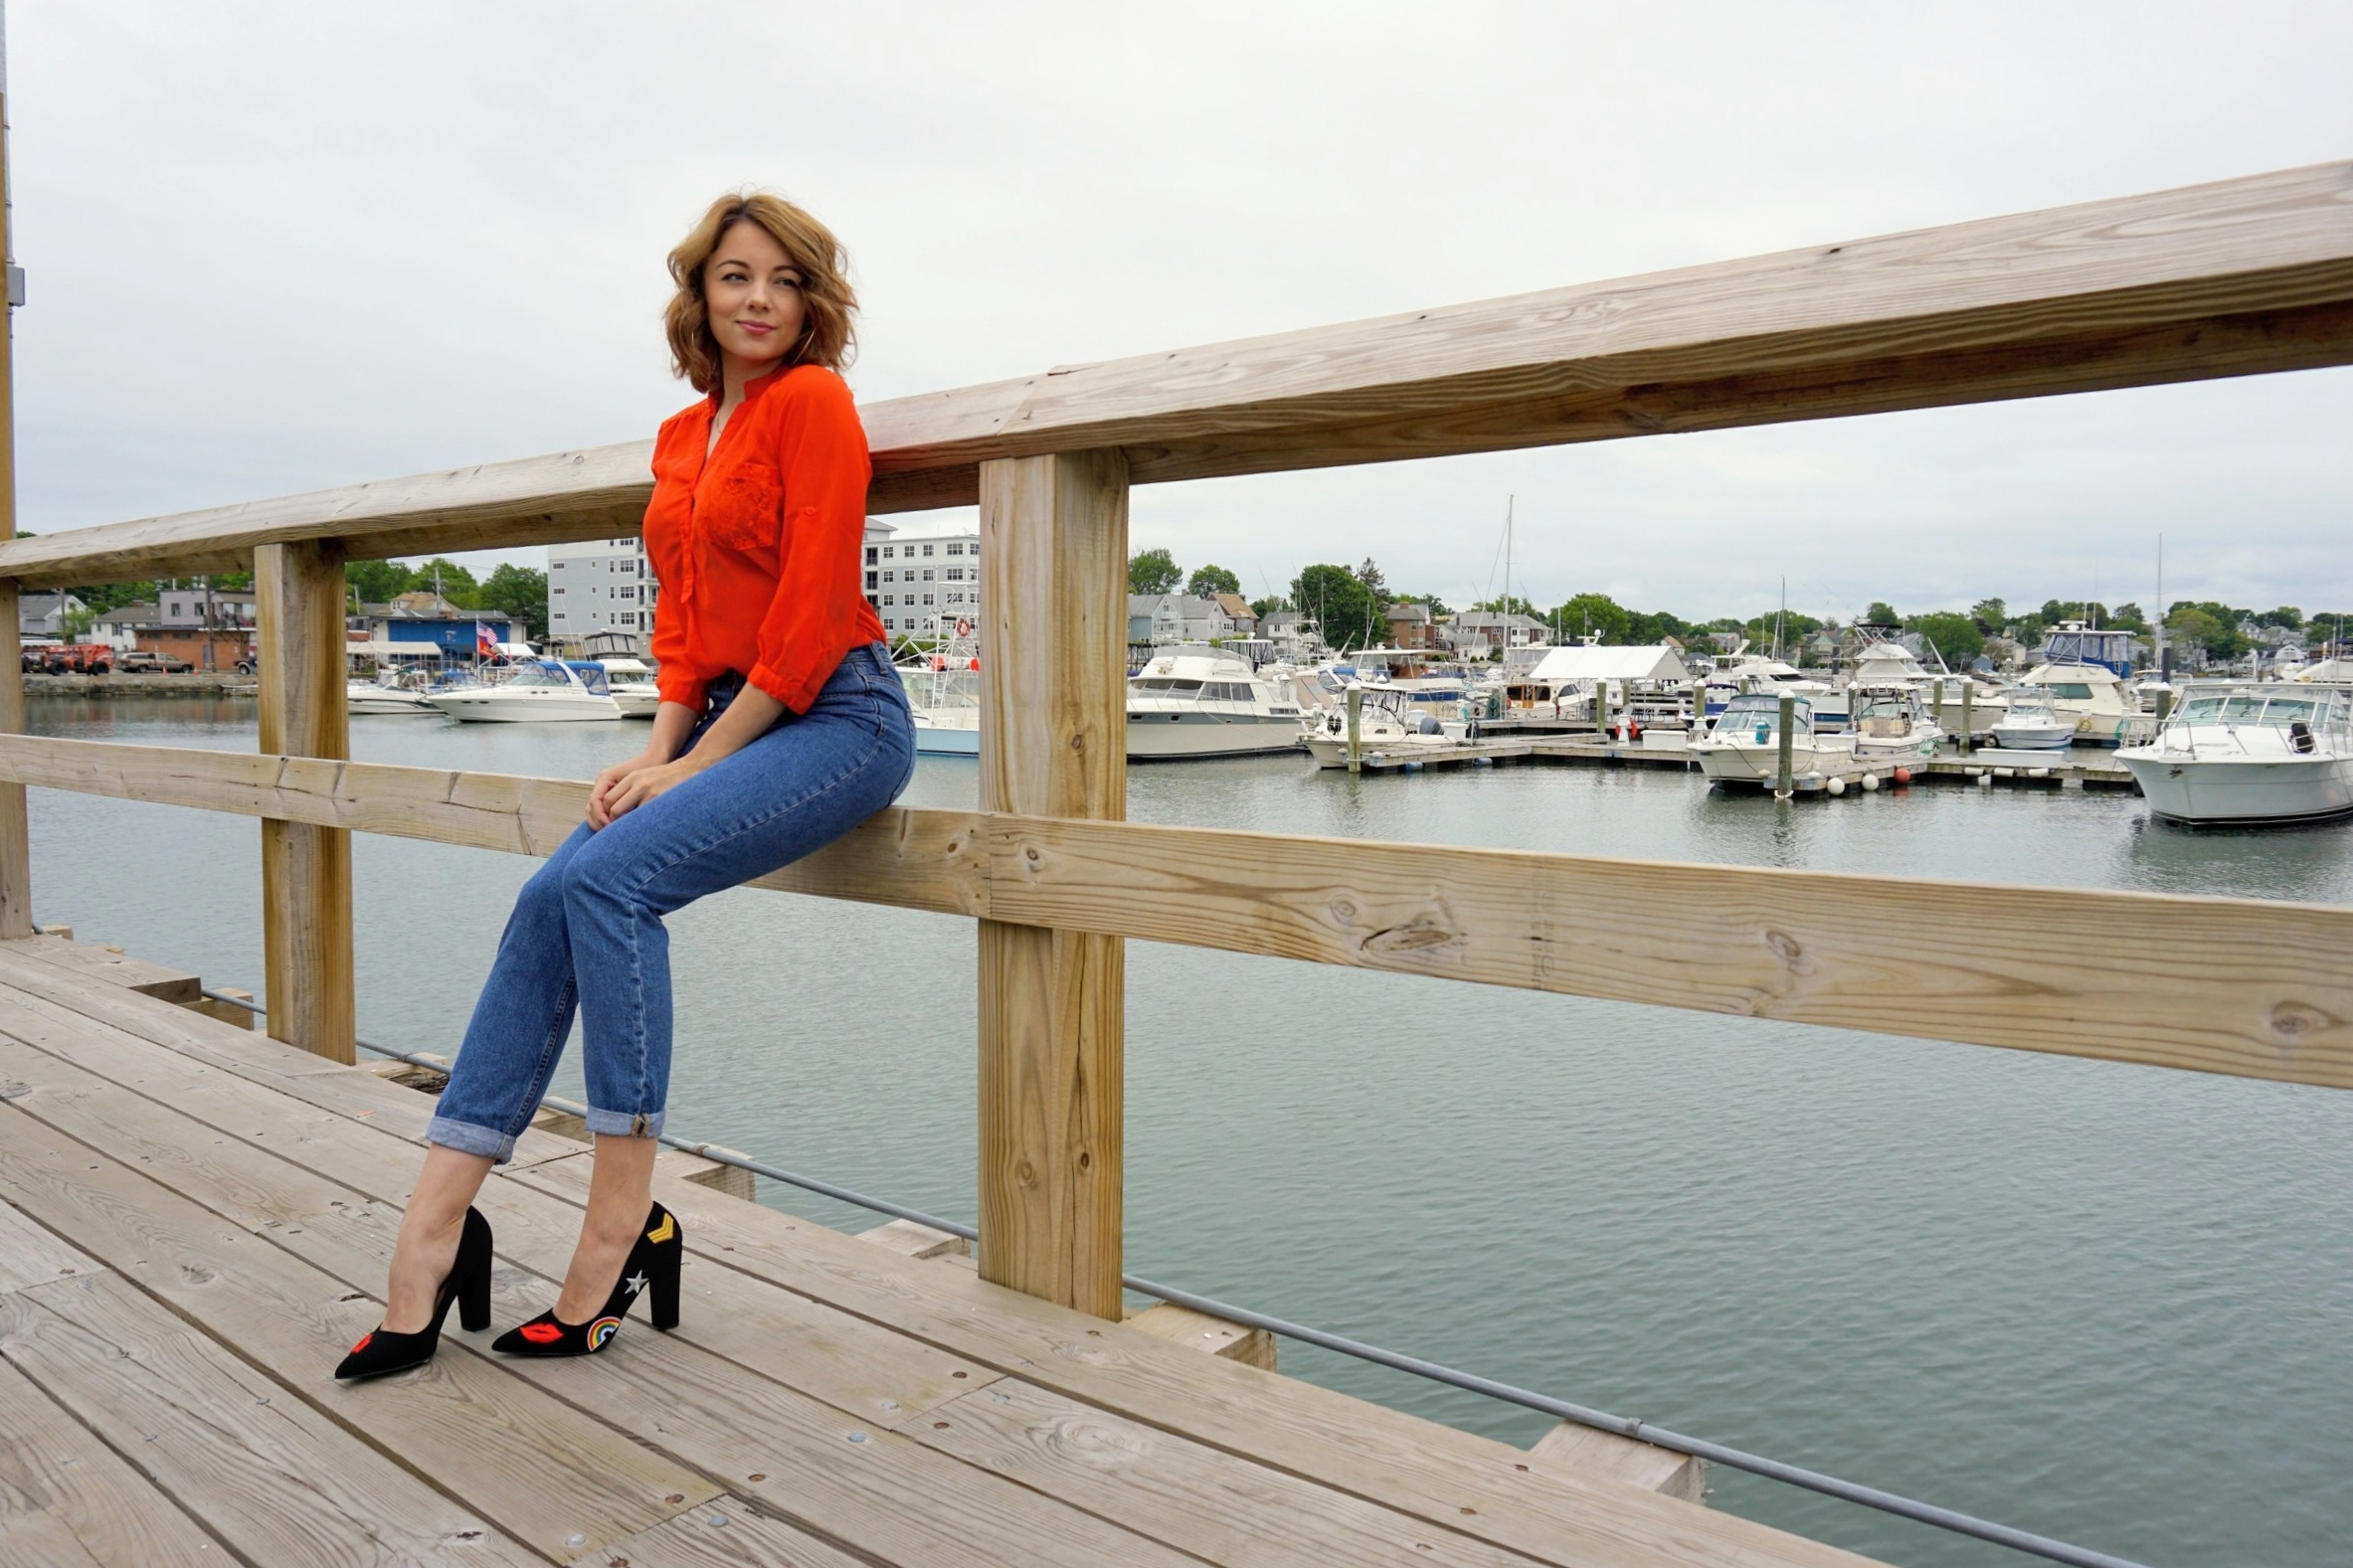 A blogger sitting on the dock with a beautiful view in the back.